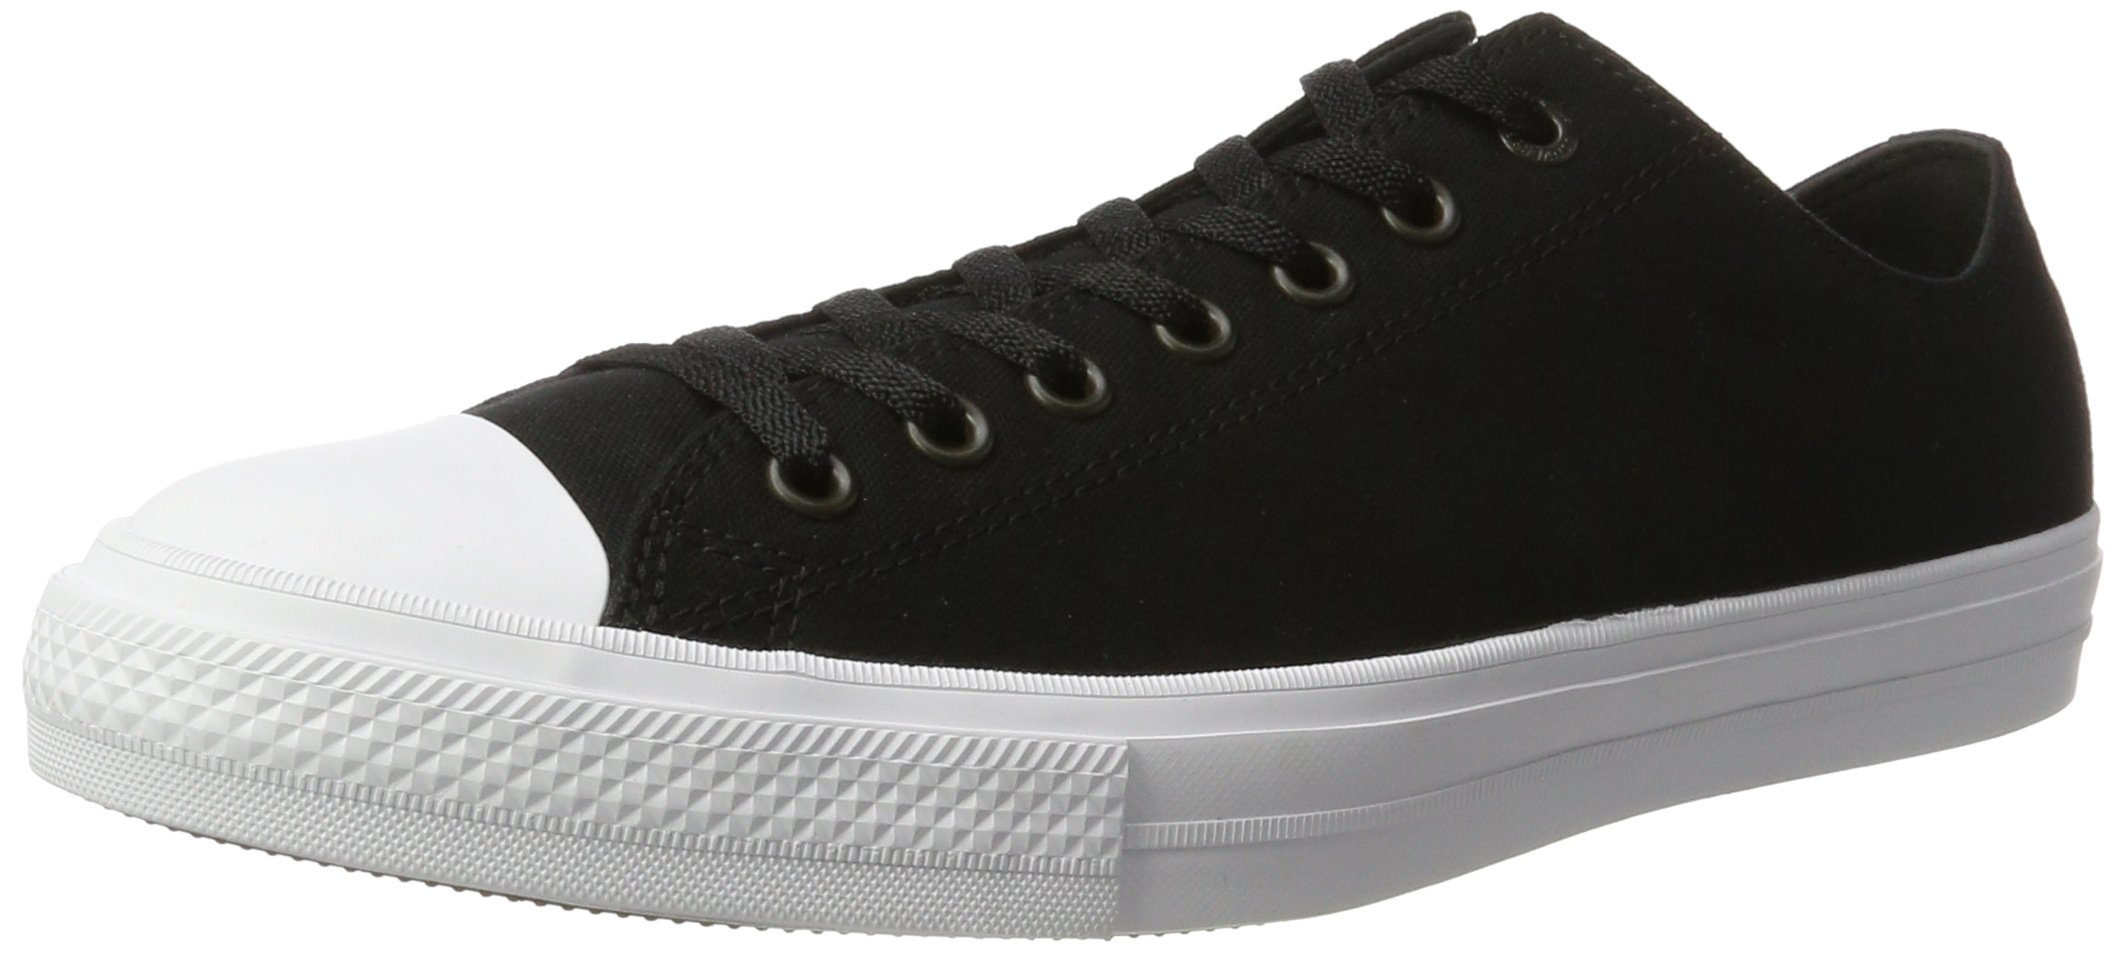 Converse Unisex Chuck Taylor II Ox Black/White/Navy Casual Shoe 13 Men US